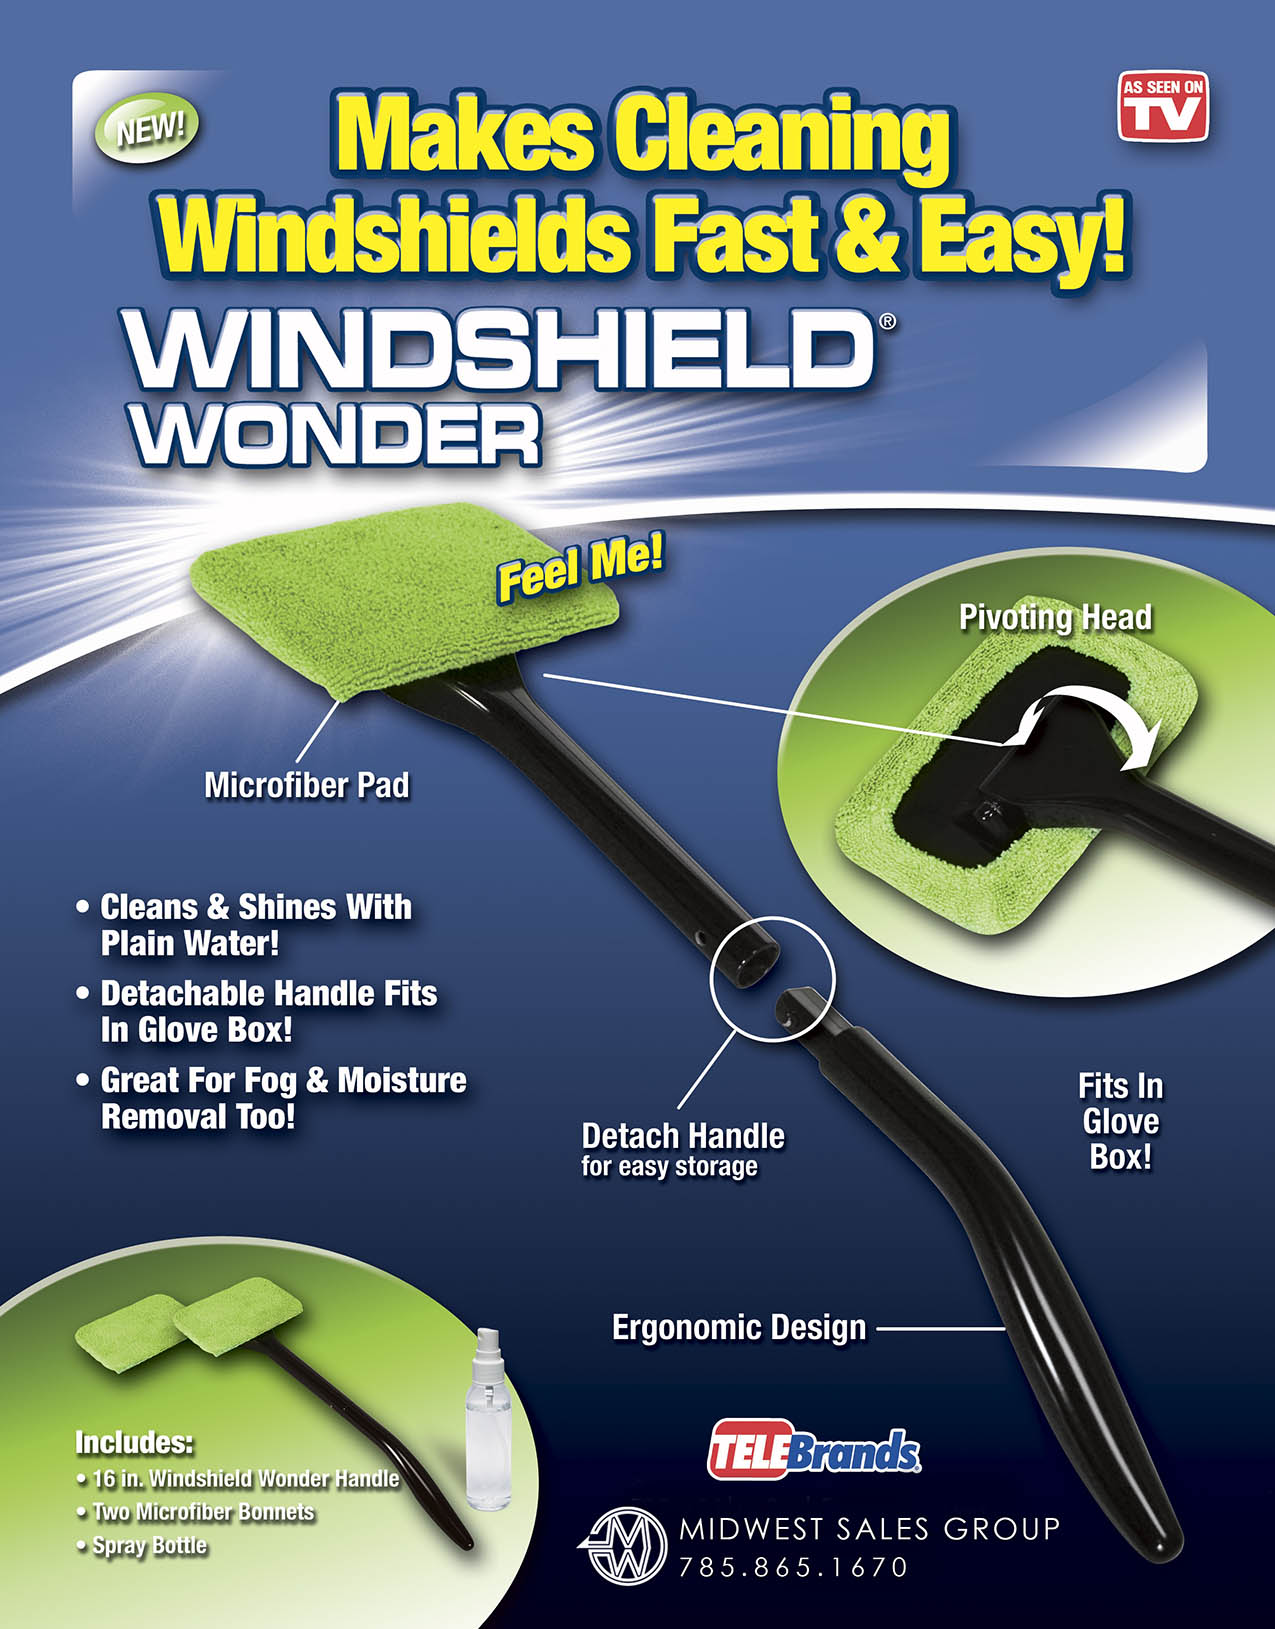 Windshield Wonder Sell Sheet